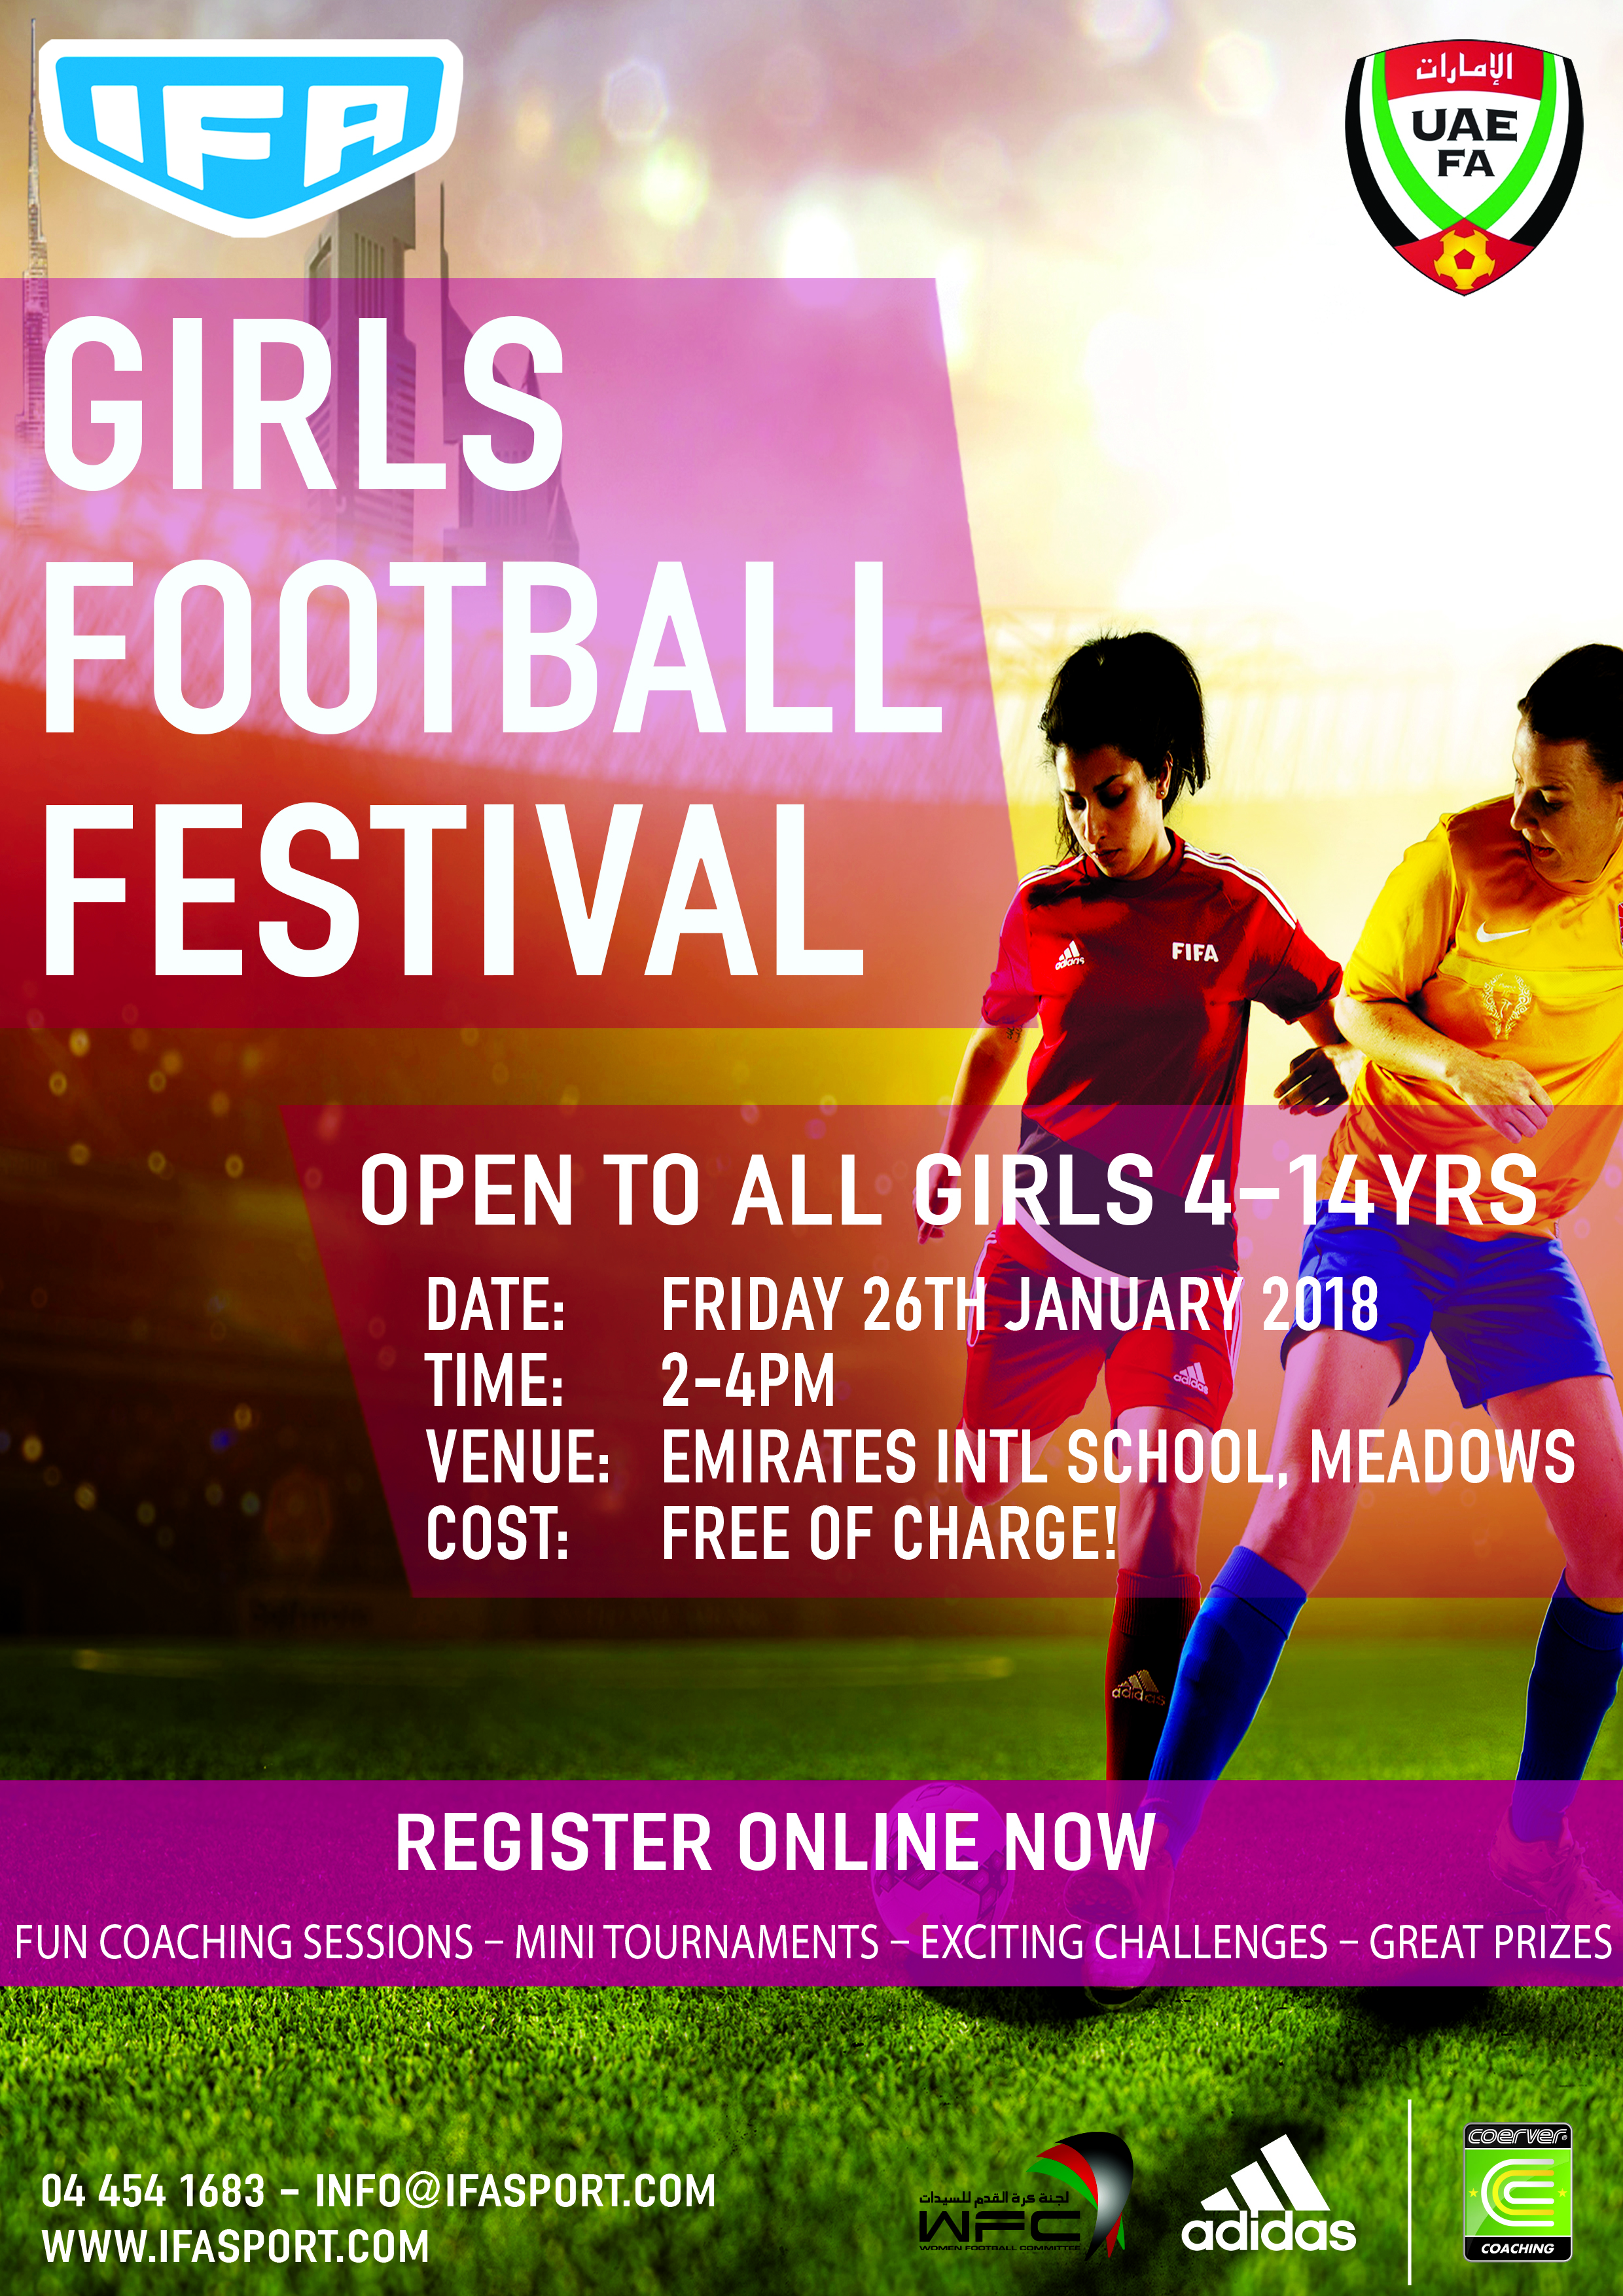 IFA Girls Football Festival